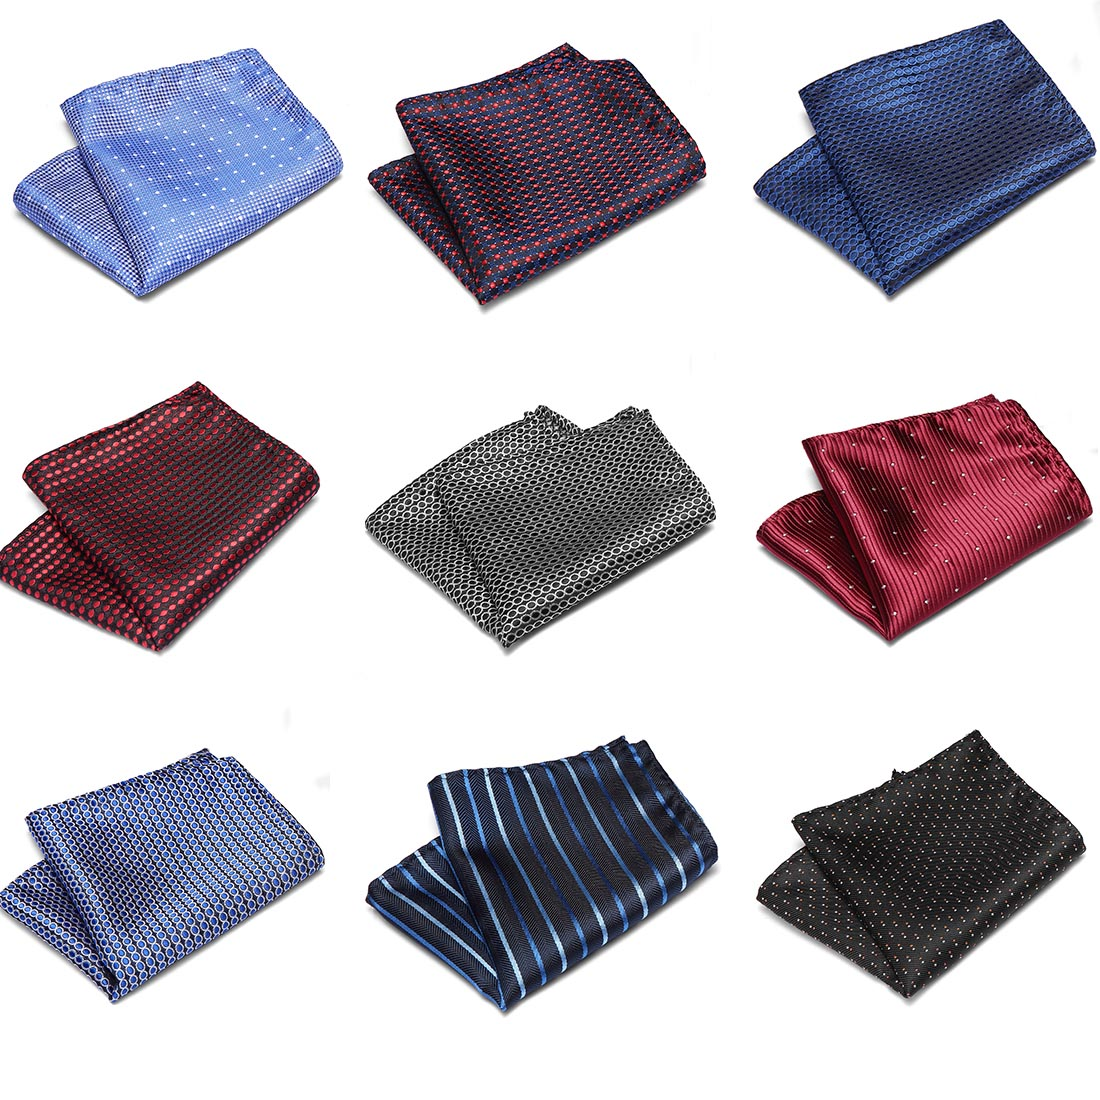 Luxury  Hankerchief  Scarves Vintage Silk  Paisley Hankies Men's Pocket Square Handkerchiefs Chest Towel